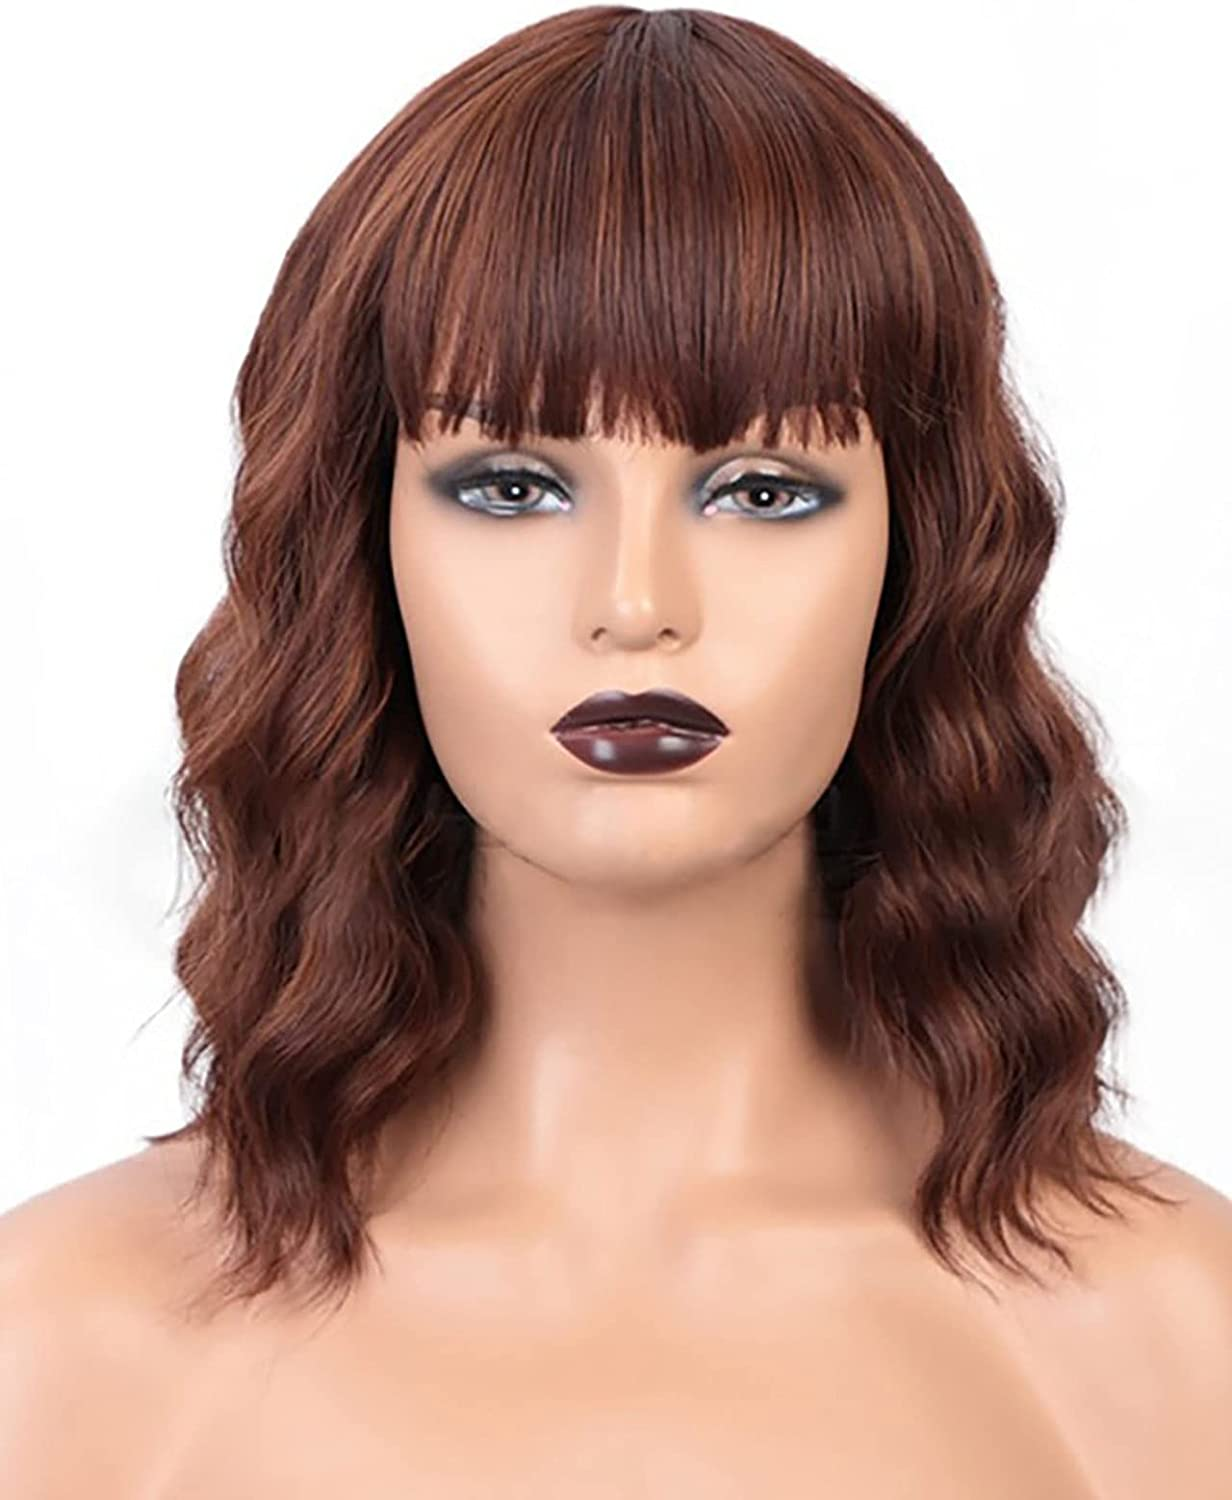 xiaoji Ms. Bob's Bangs Wig Shoulder-Length Ladies Natur Charming High quality Super beauty product restock quality top! new